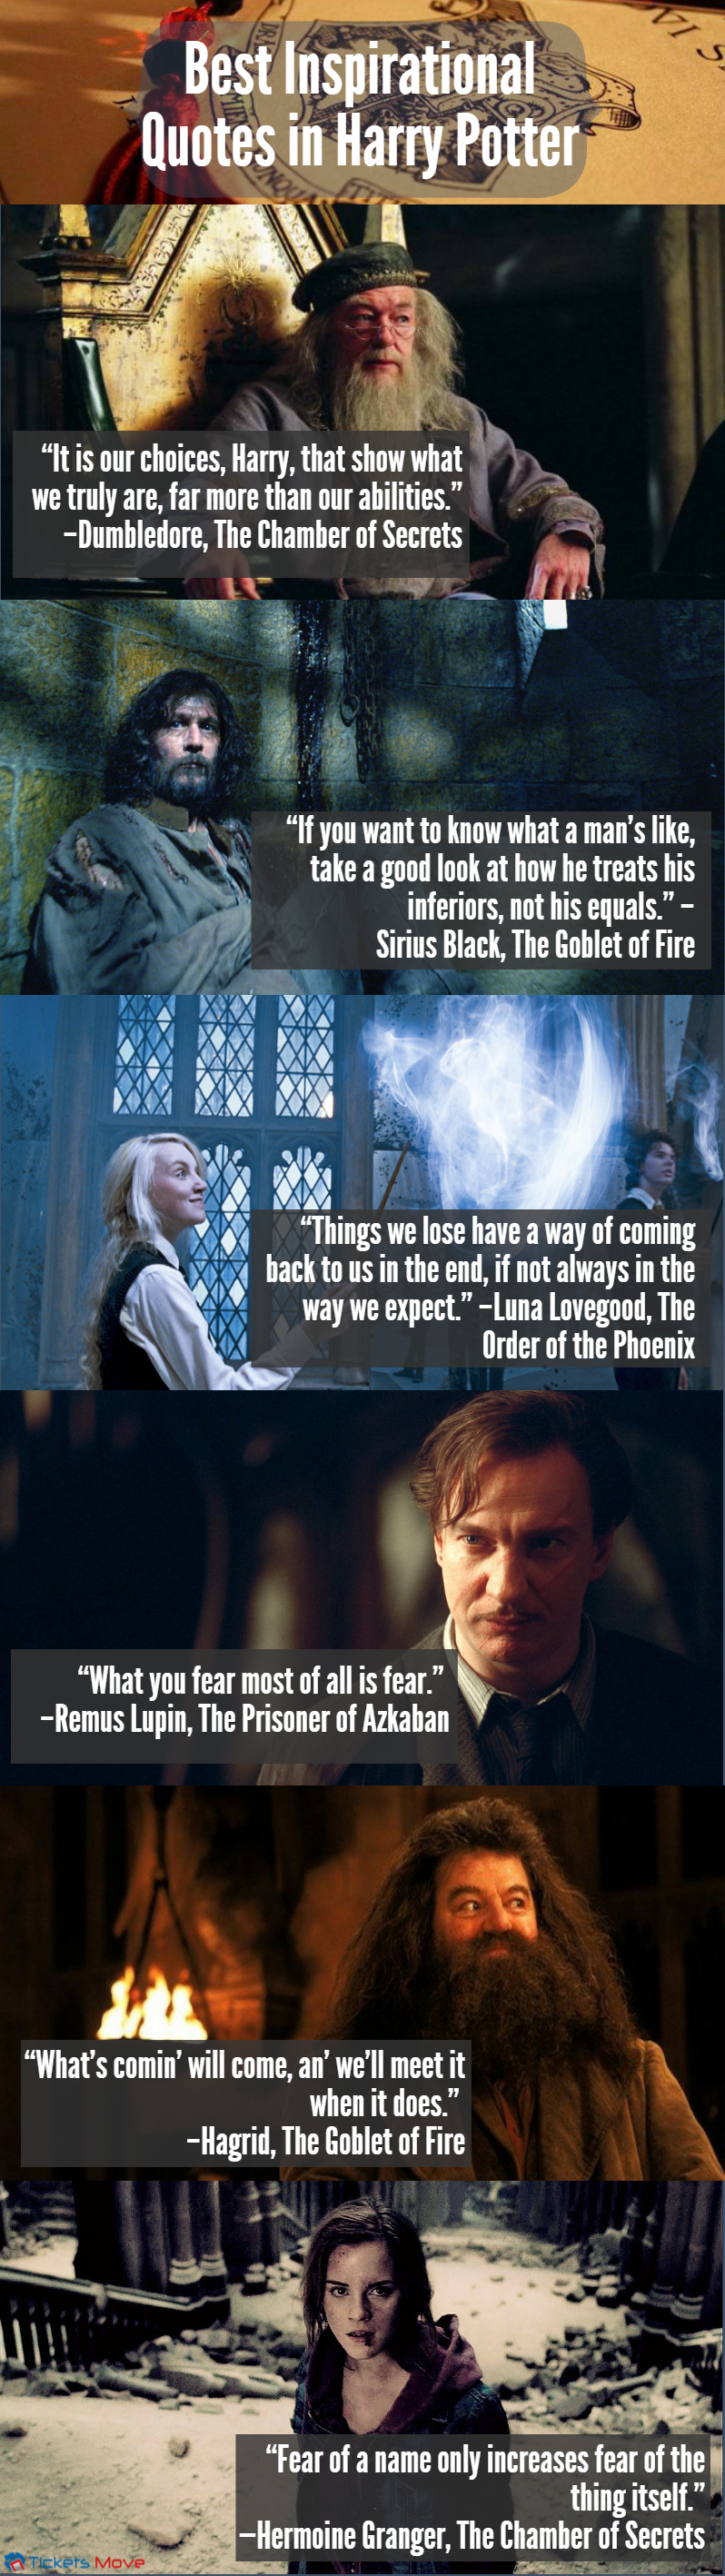 Get Inspired By These Awesome Quotes From Harry Potter Movies Harry Potter Quotes Harry Potter Movies Harry Potter Love